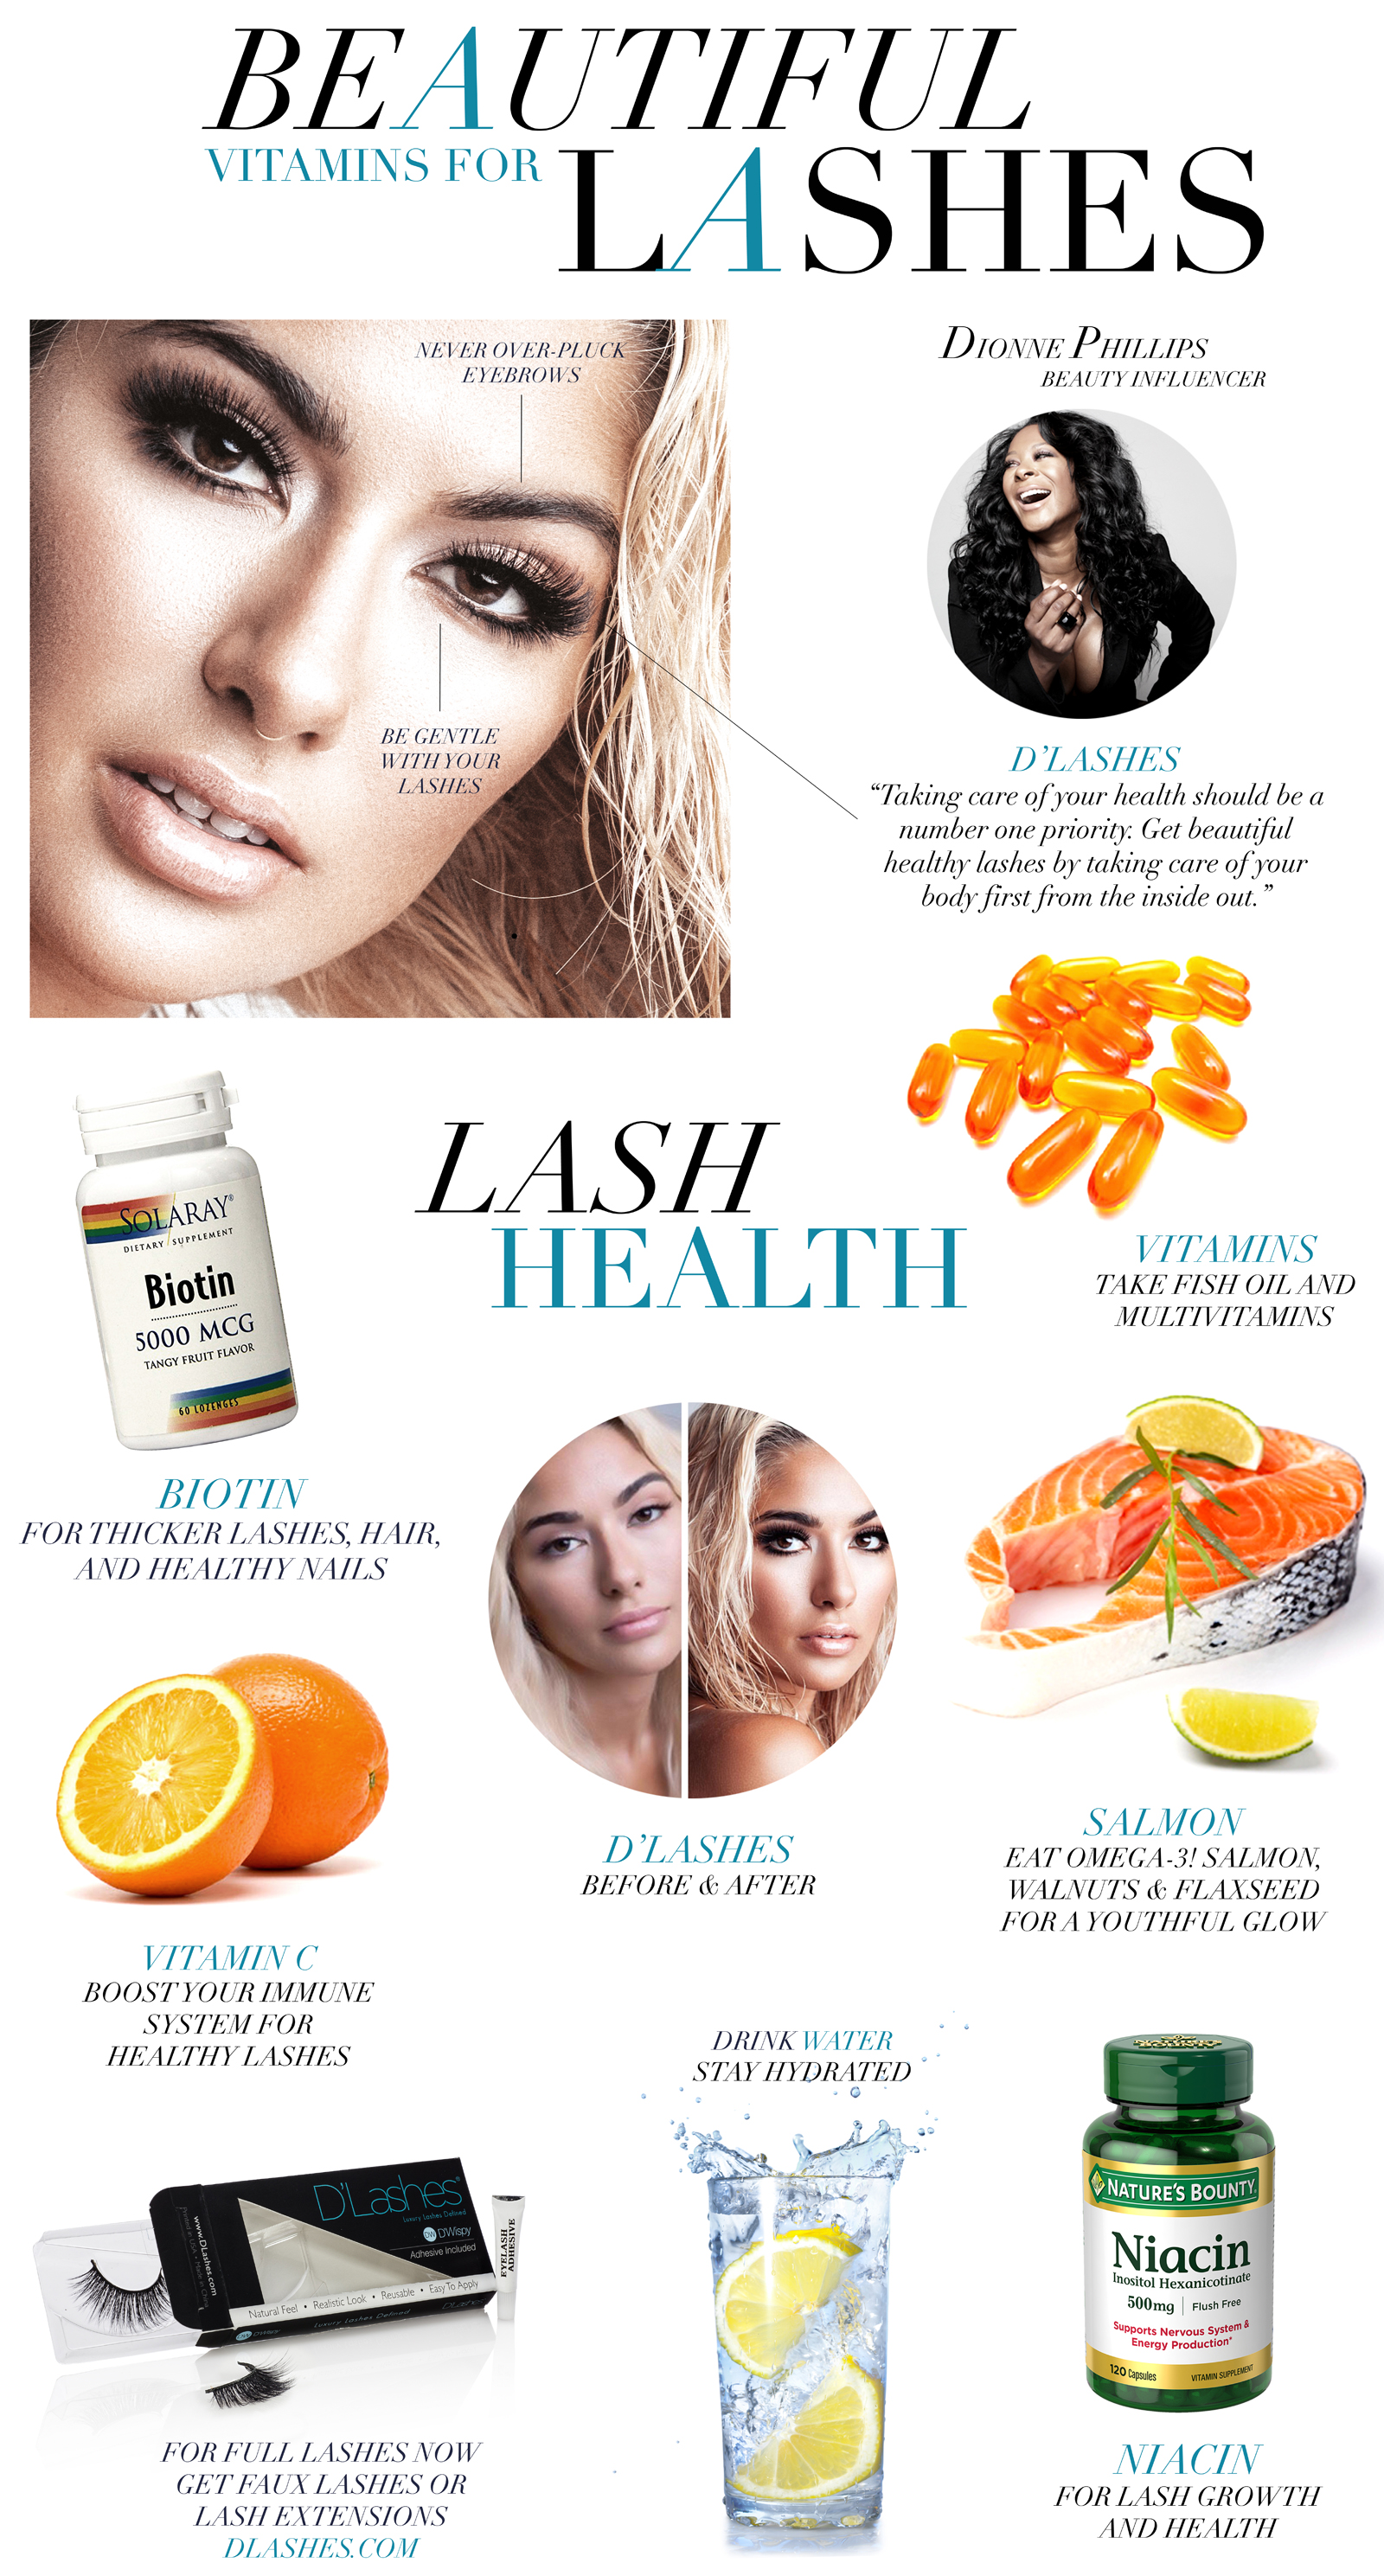 D'lashes Vitamins Healthy Lashes Beauty Blog